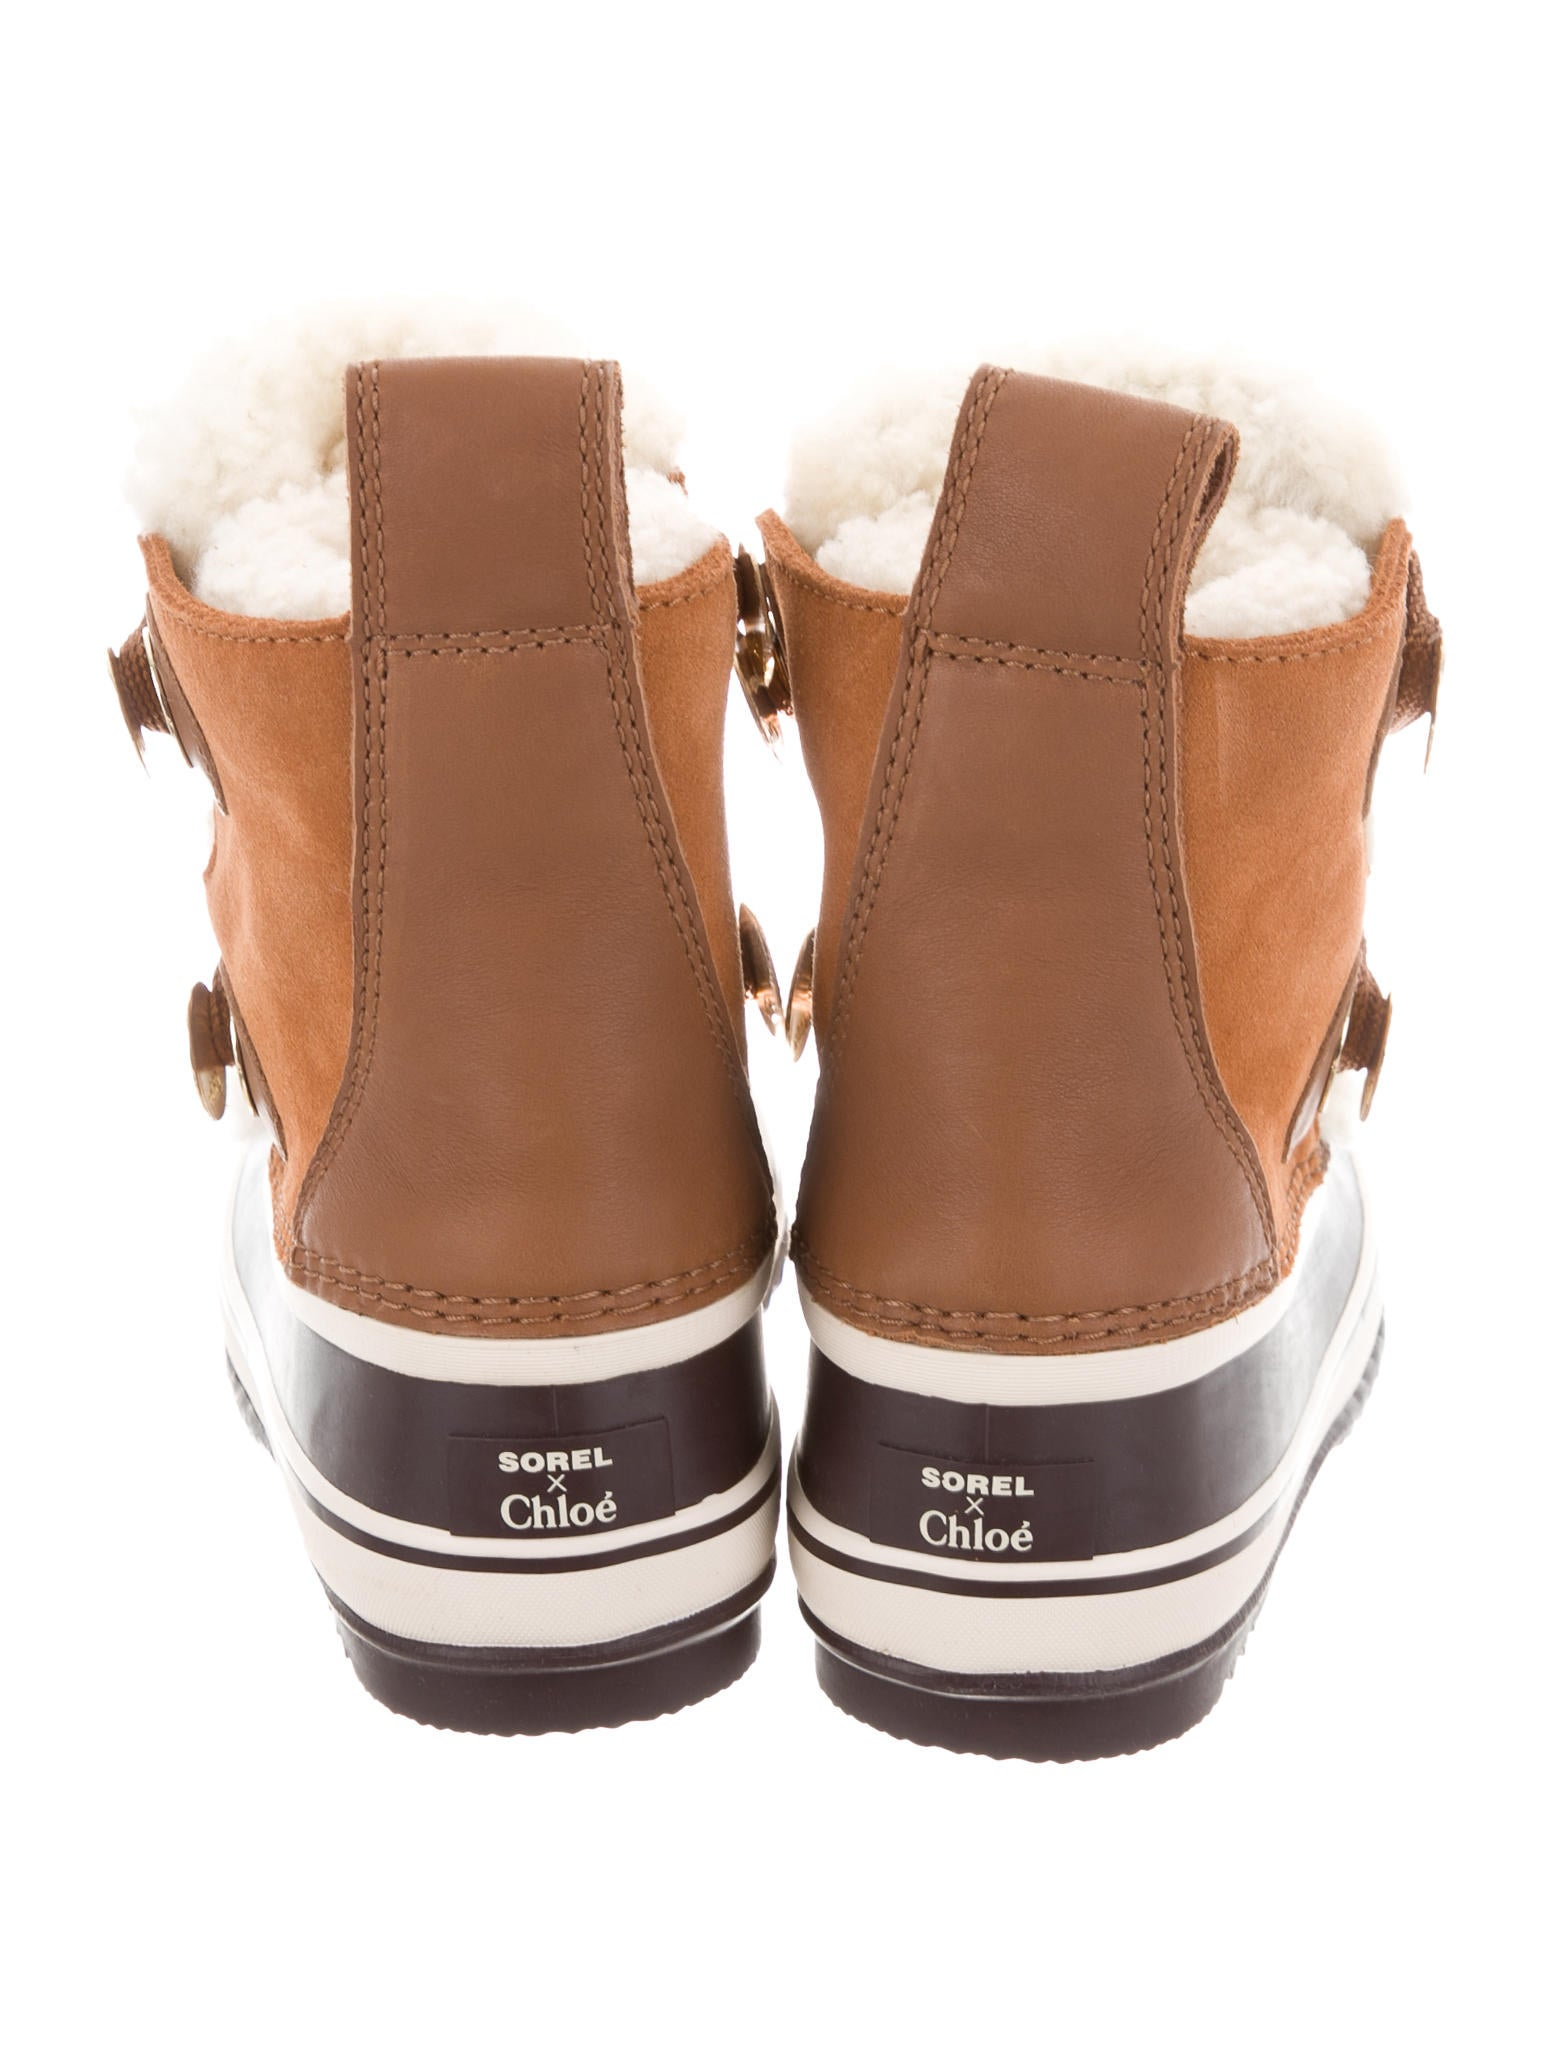 Sorel X Chlo 233 2018 Shearling Trimmed Ankle Boots Shoes